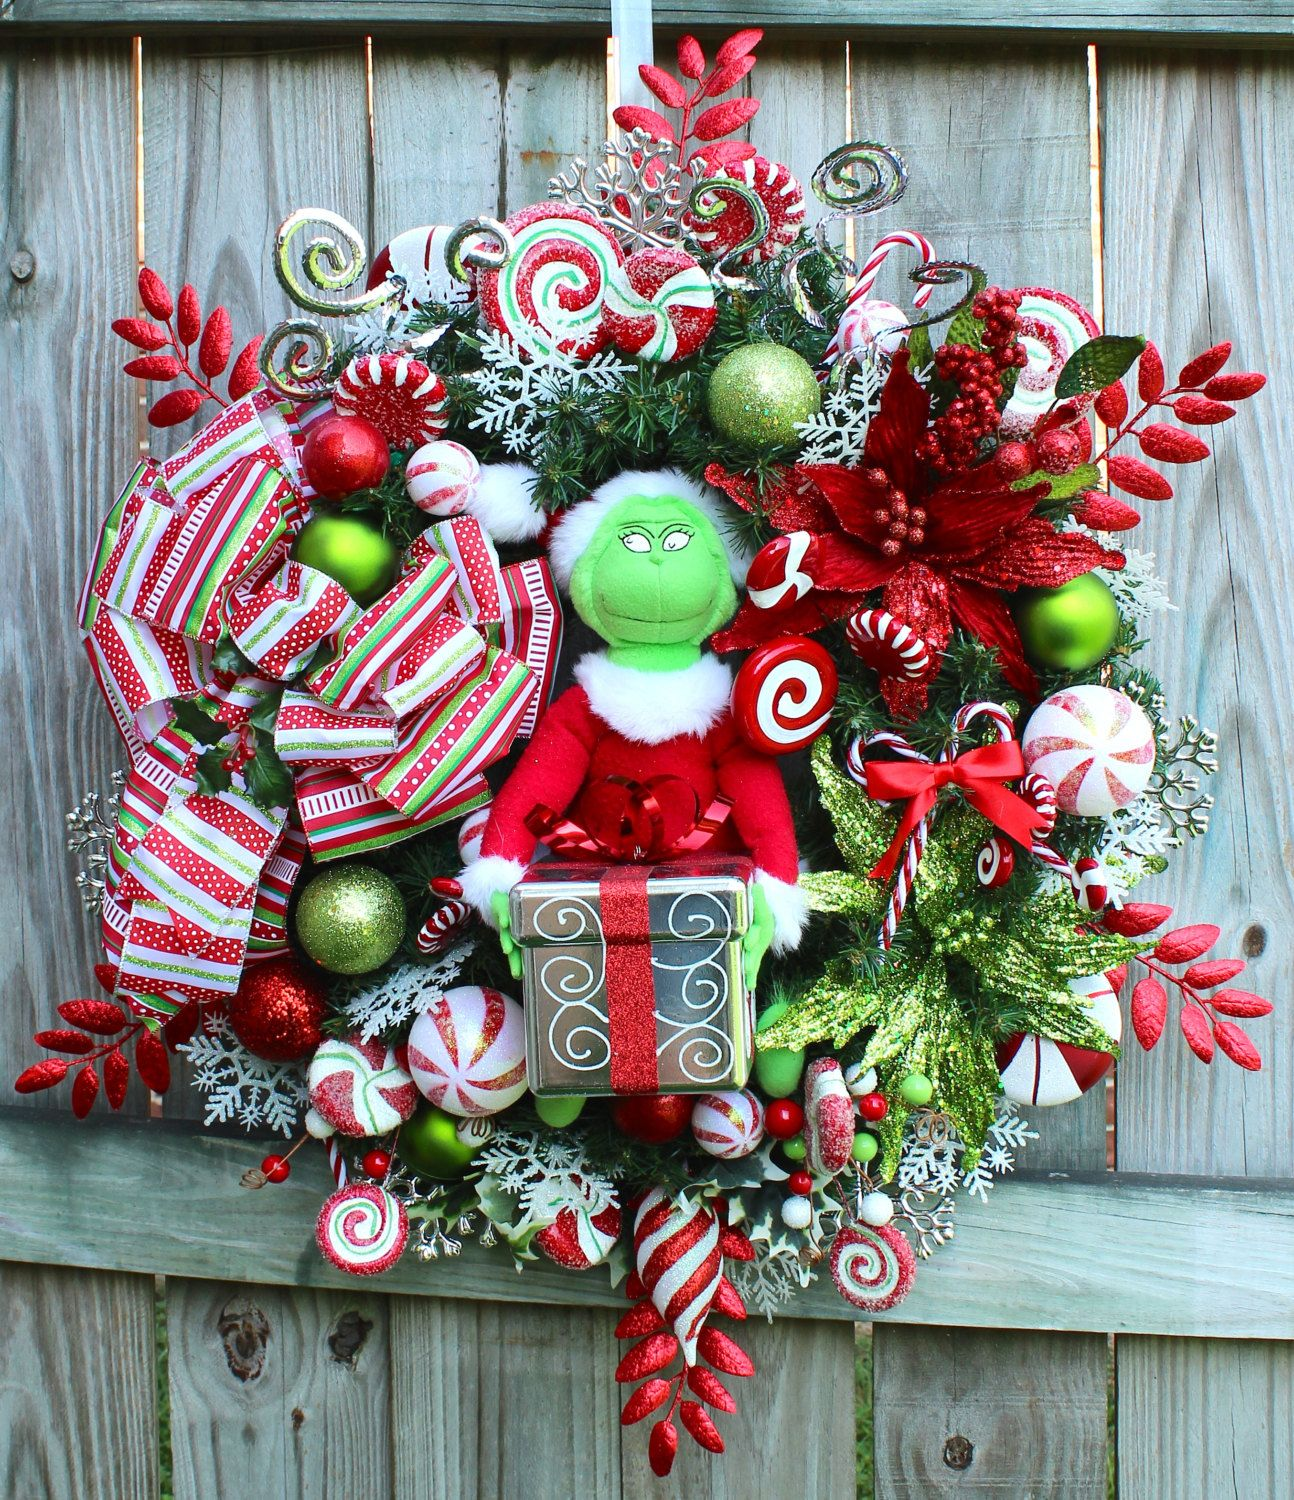 hallmark plush grinch doll shatterproof 6 inch gift box ornament 24 inch artificial canadian holiday